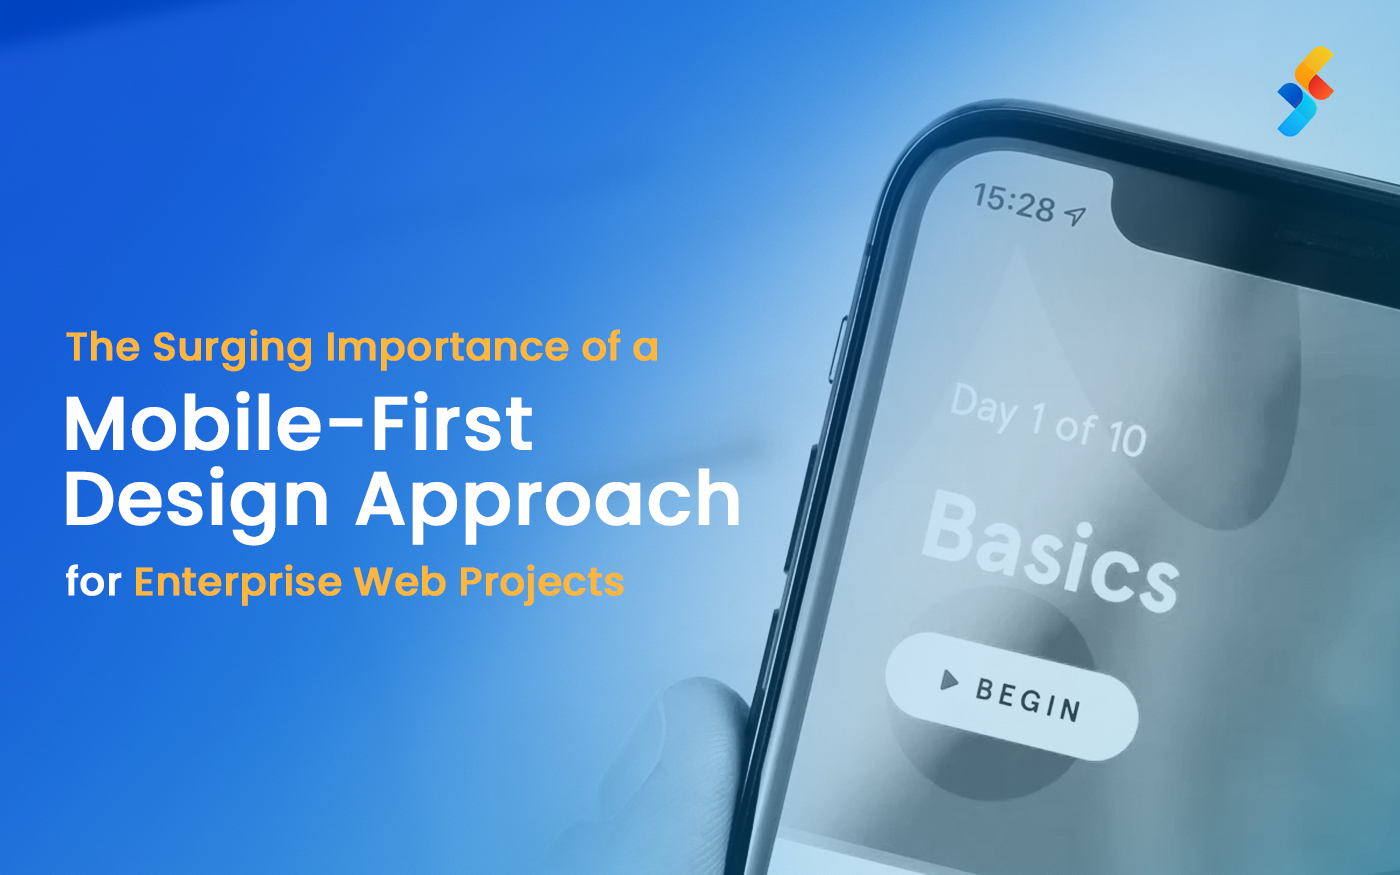 The Surging Importance of a Mobile-First Design Approach for Enterprise Web Projects